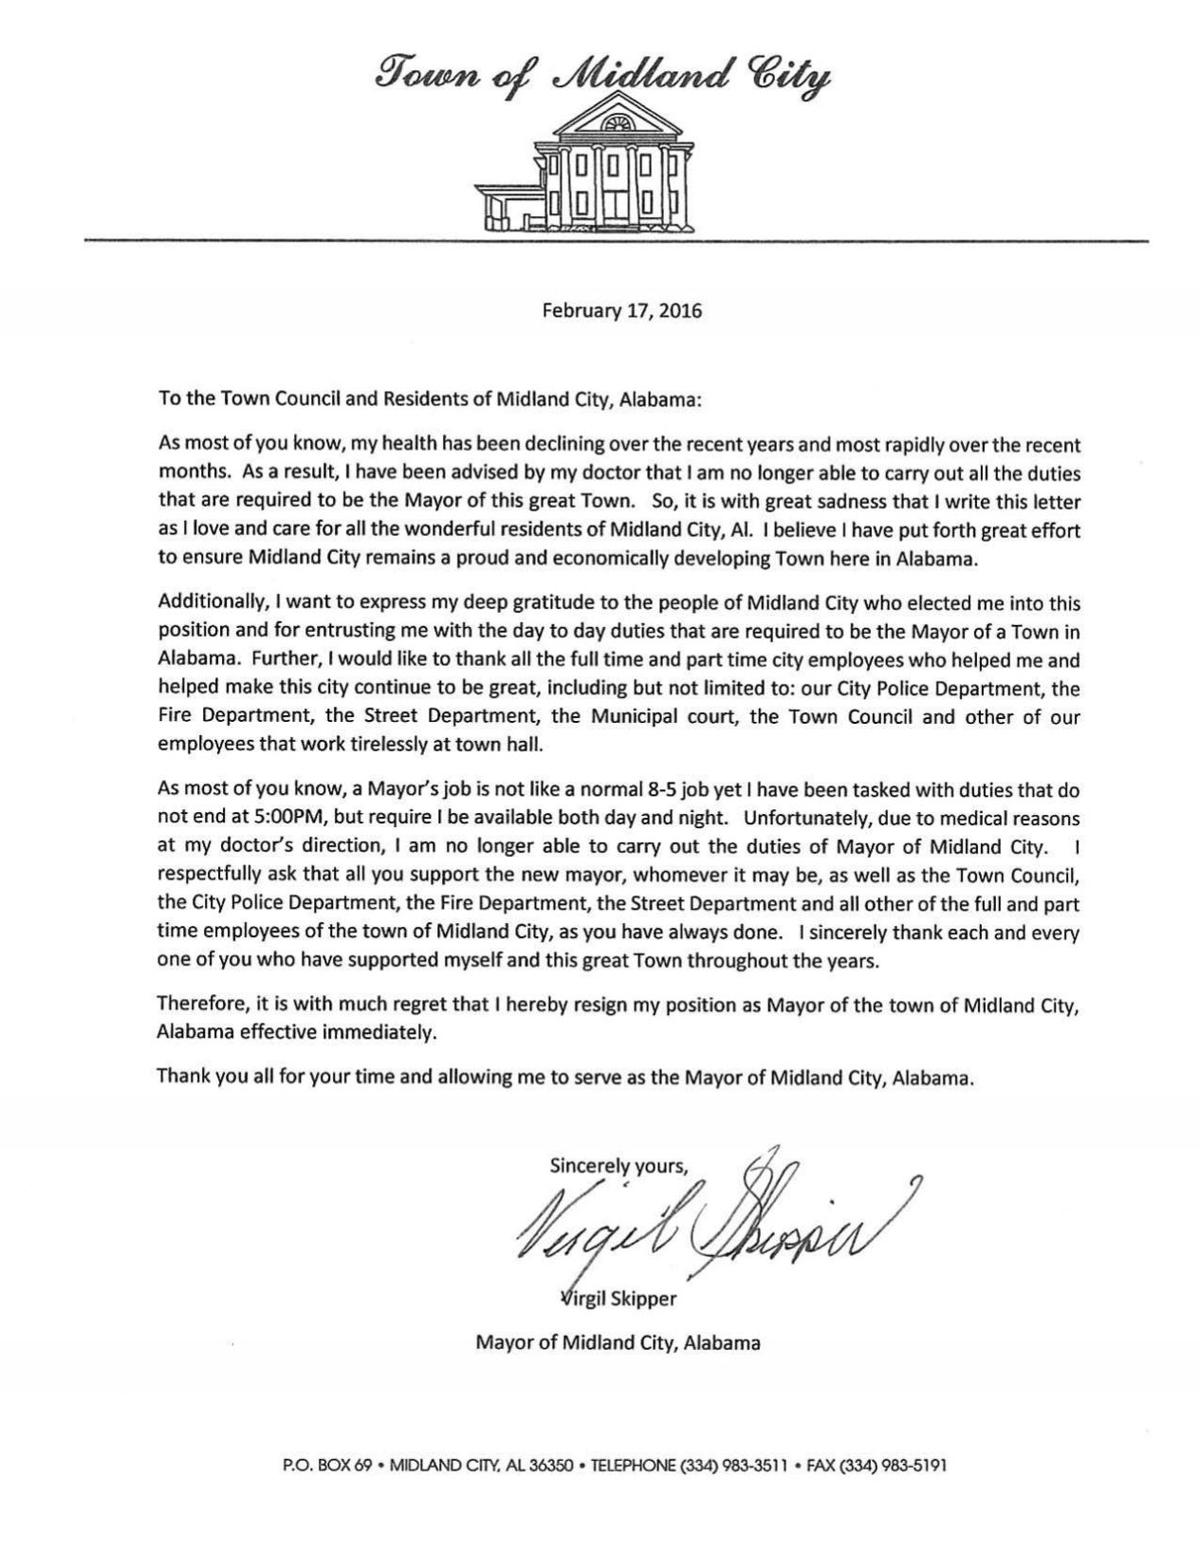 Mayor Virgil Skippers Resignation Letter Government Dothaneagle